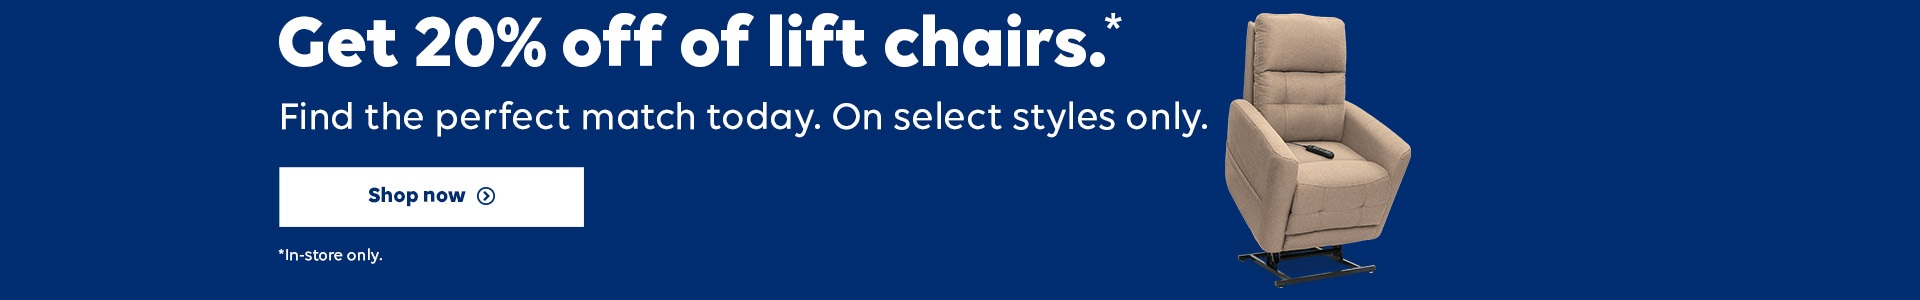 Get 20% off Lift Chairs. Find the perfect match today. On select styles only. Shop Now.